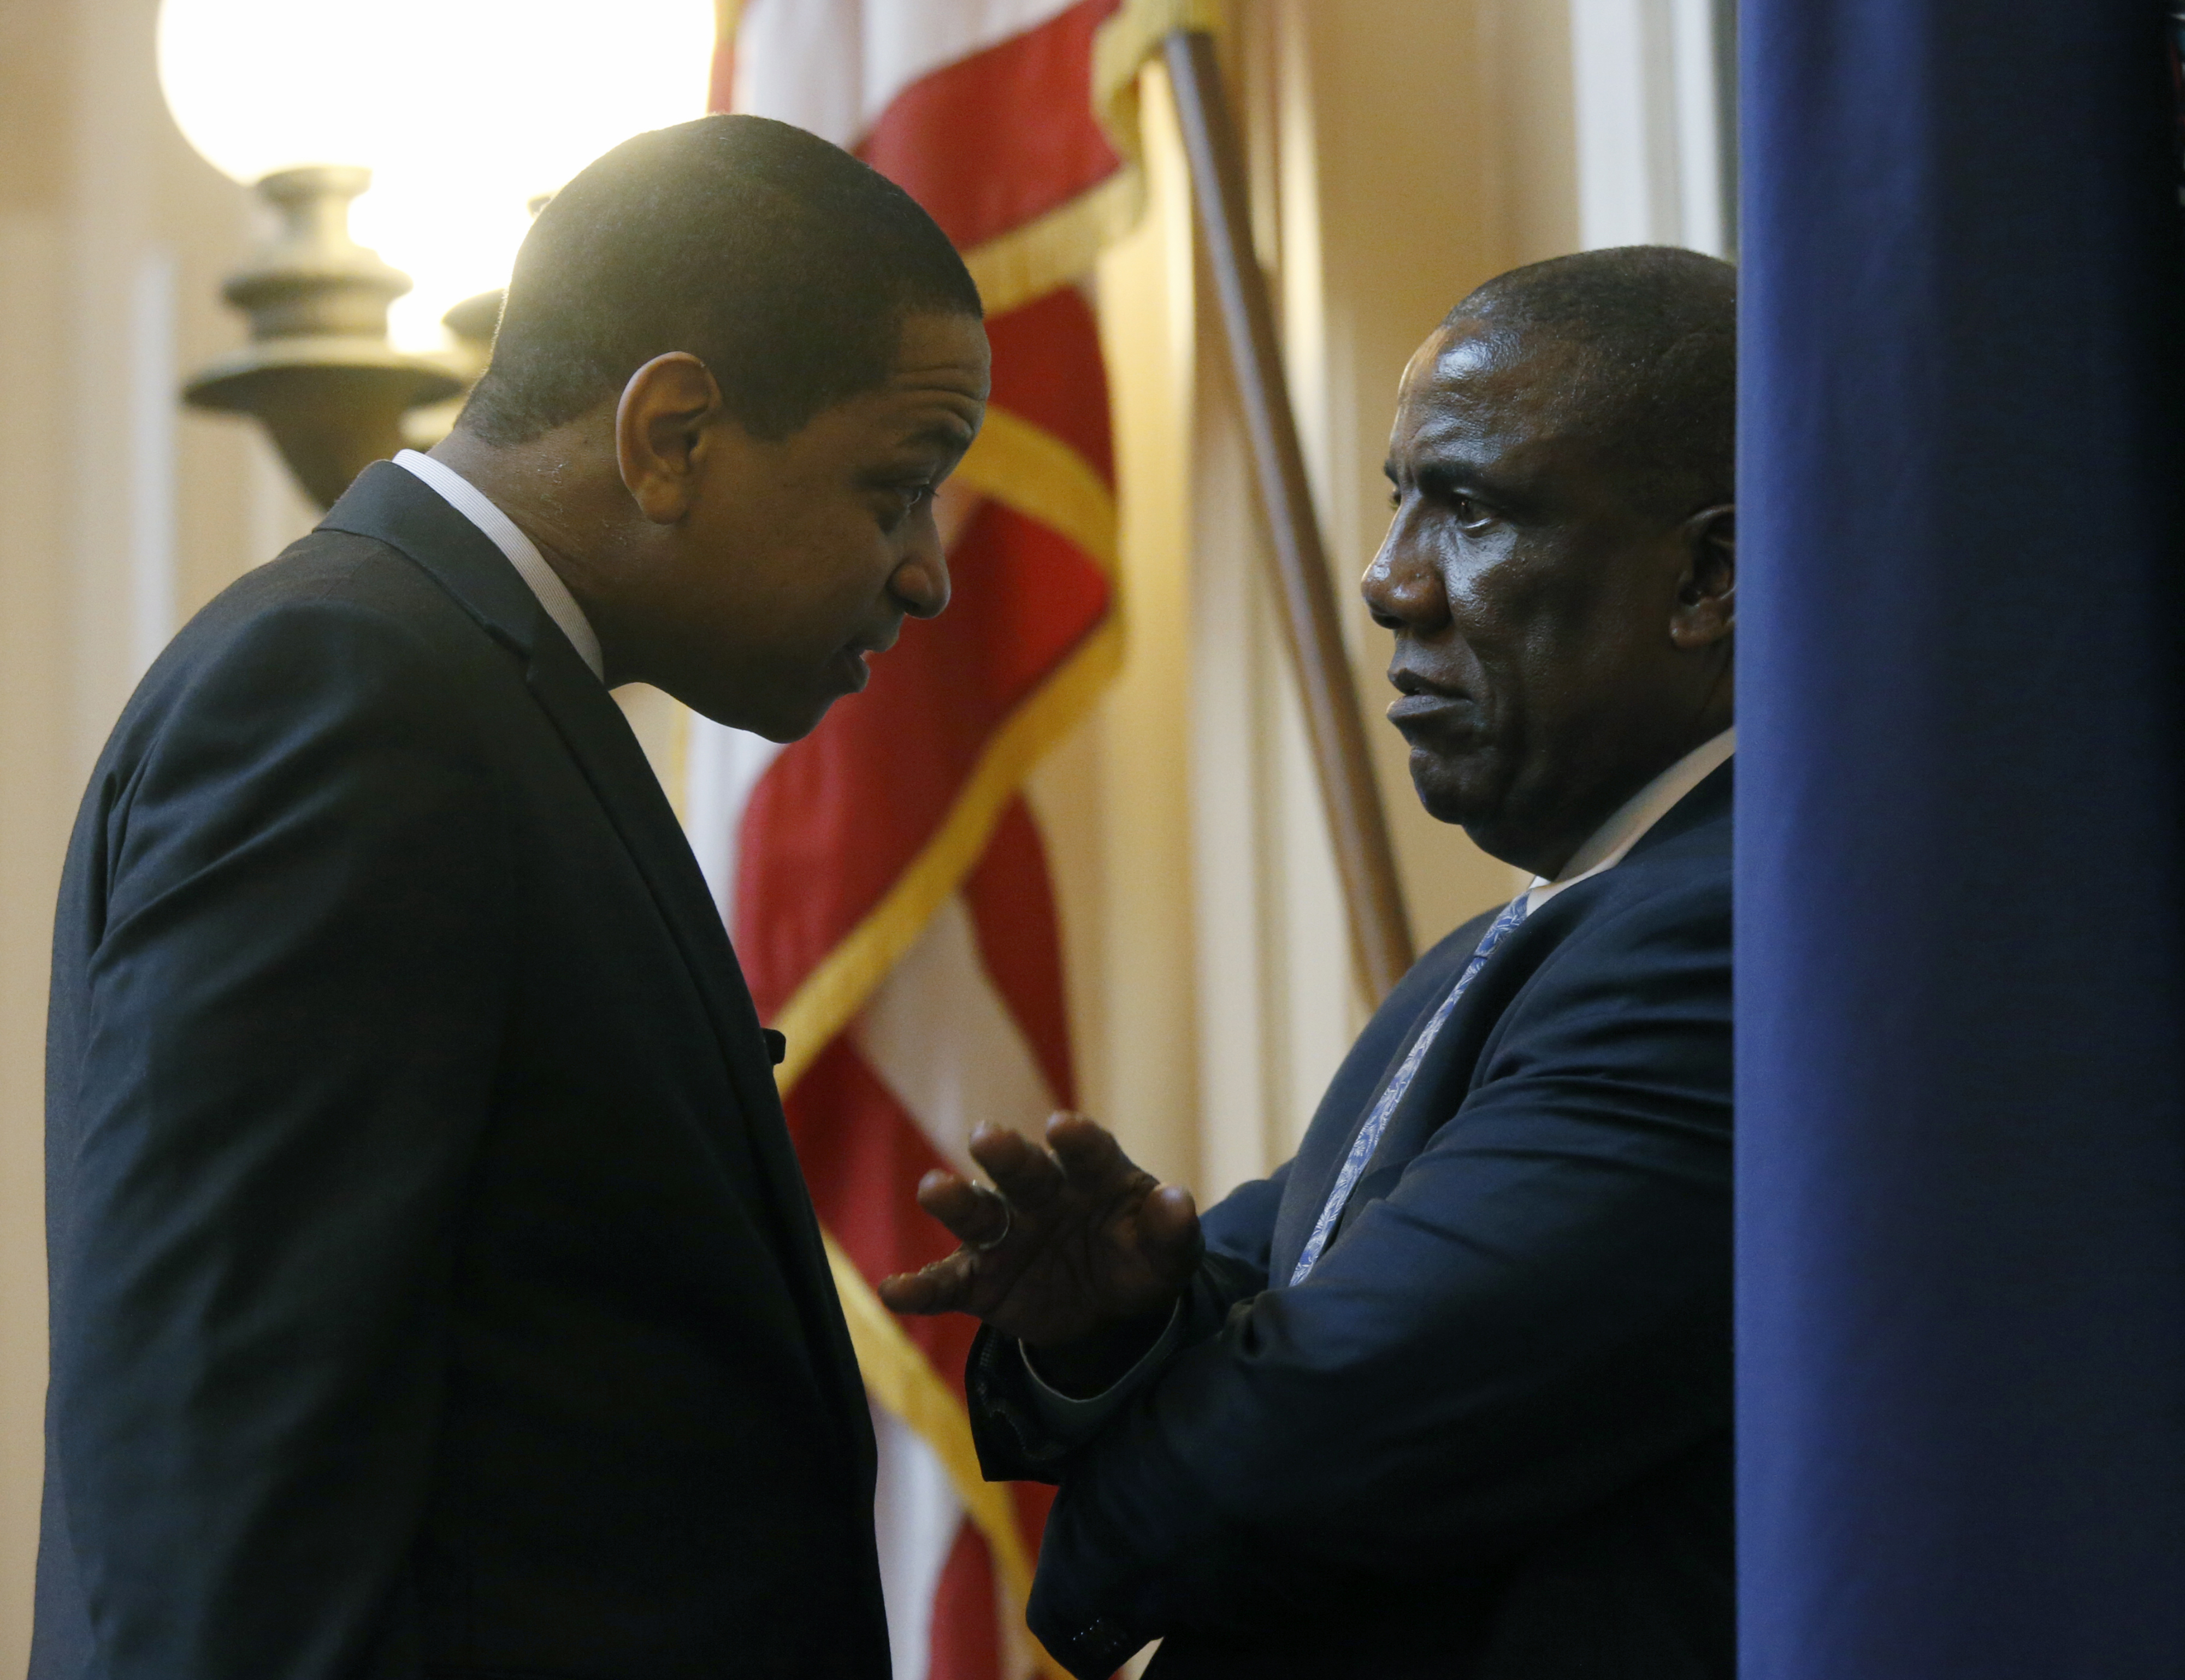 Democrats speechless as scandal engulfs Virginia's leaders